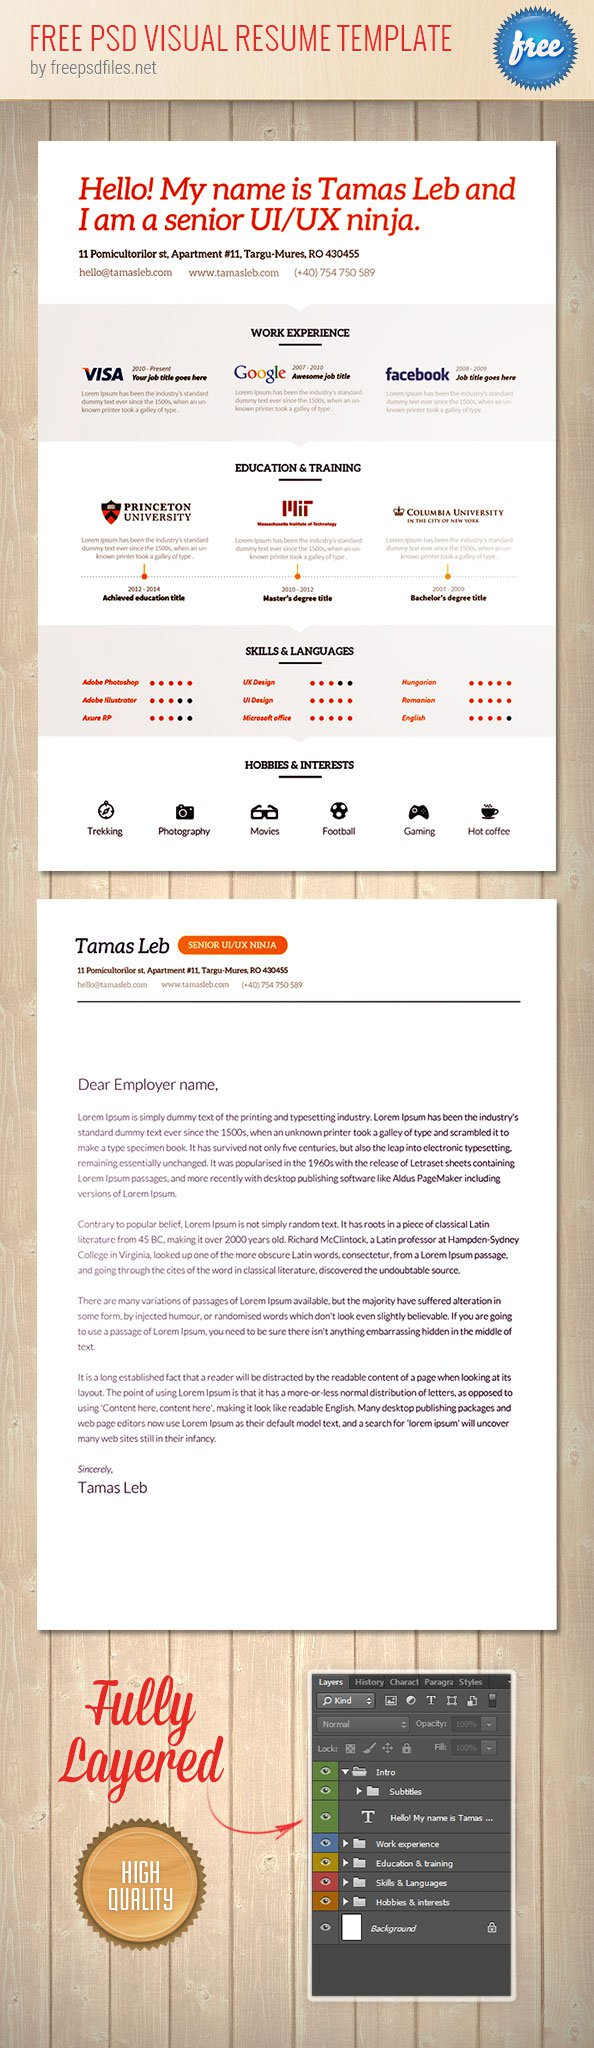 Free-PSD-Visual-Resume-Template_Preview